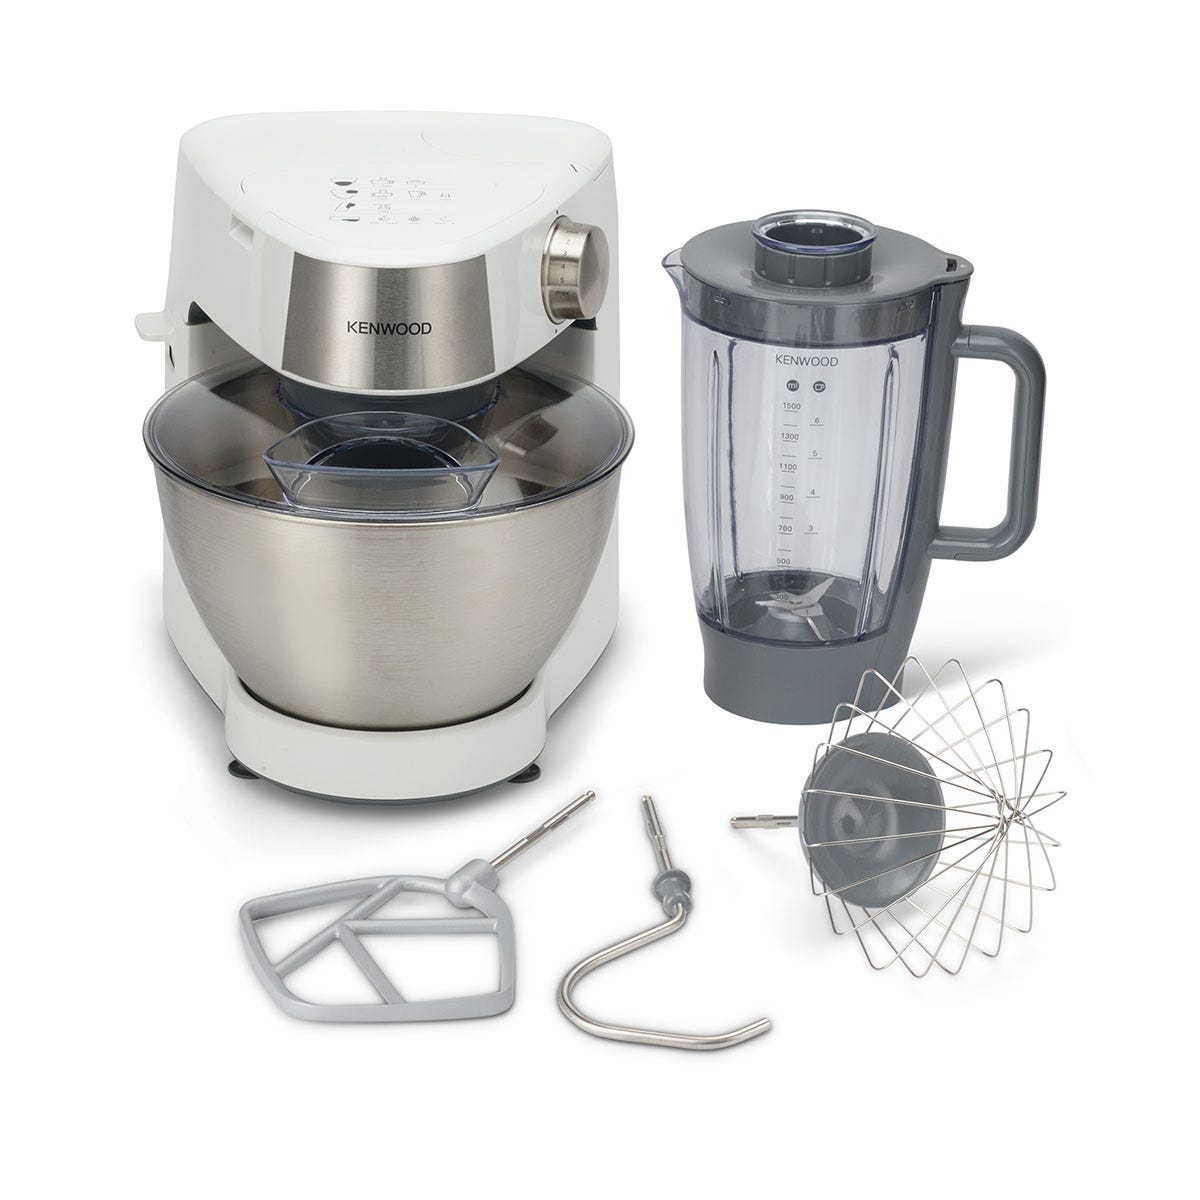 Kenwood KHC29.B0WH Prospero 4.3L Stand Mixer - White and Stainless Steel